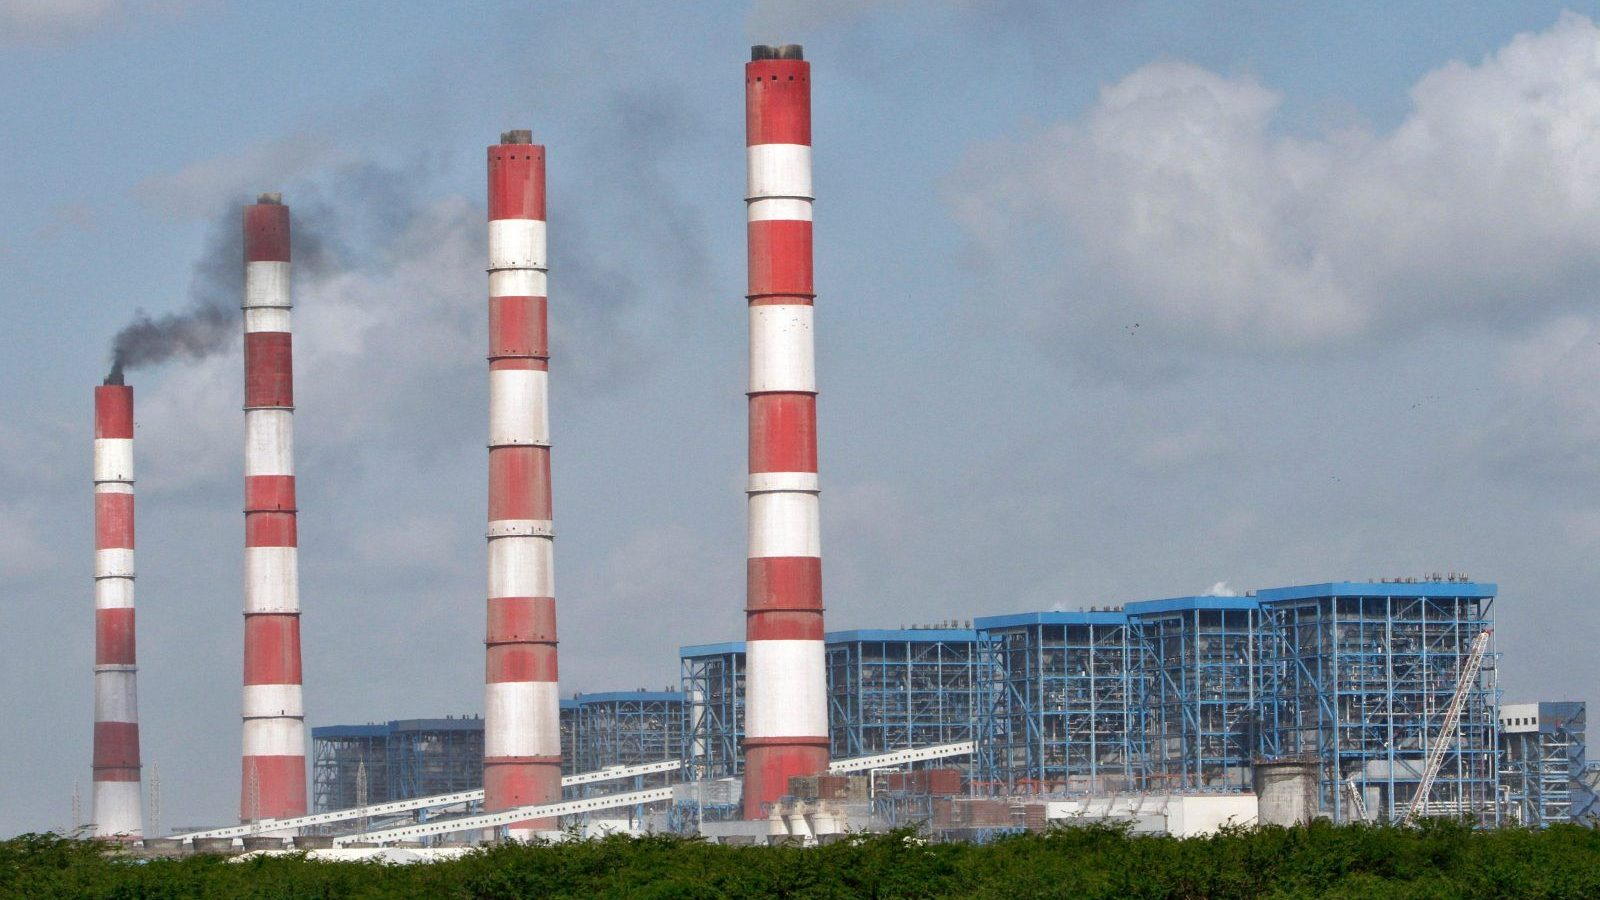 A general view of Adani Power Company thermal power plant is pictured at Mundra in the western Indian state of Gujarat September 24, 2012. As global mining giants scale back their ambitions in Australia's coal sector, Indian billionaire Gautam Adani is showing no such caution and plans to push full-steam ahead with a $4.5 billion project in a bet on rising Indian demand. Picture taken September 24, 2012. To match interview INDIA-ADANI/   REUTERS/Amit Dave (INDIA - Tags: BUSINESS ENERGY) - GM1E89P1LGJ01